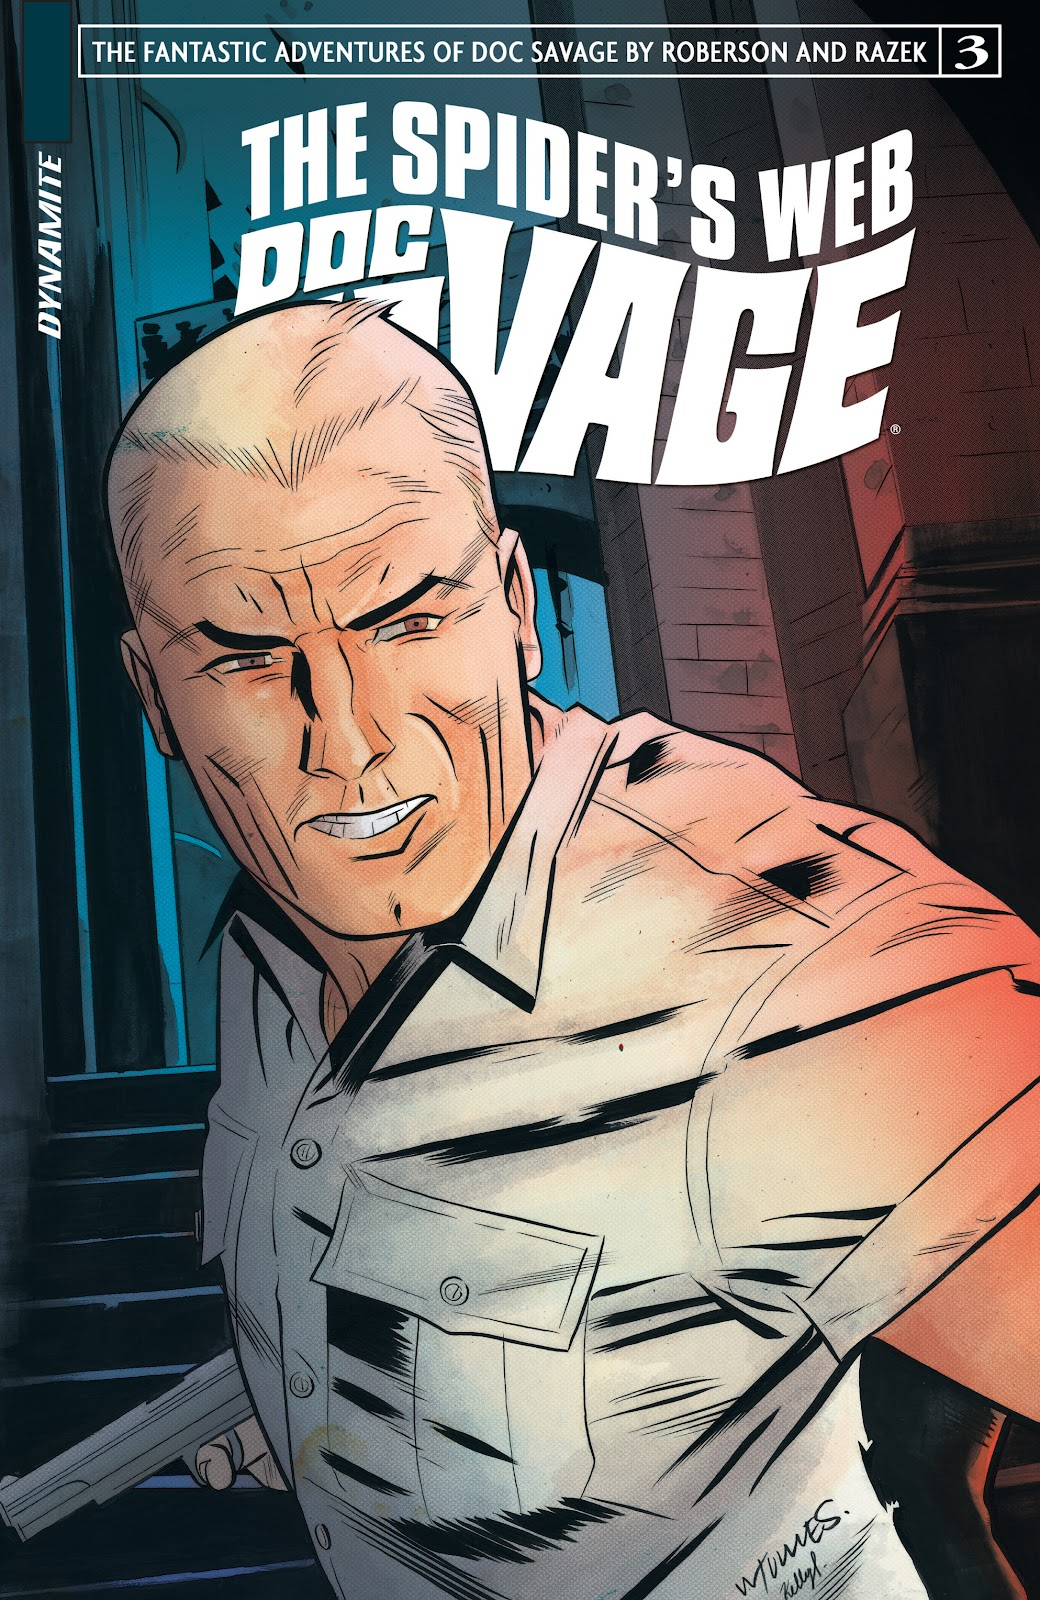 Doc Savage: The Spiders Web issue 3 - Page 1